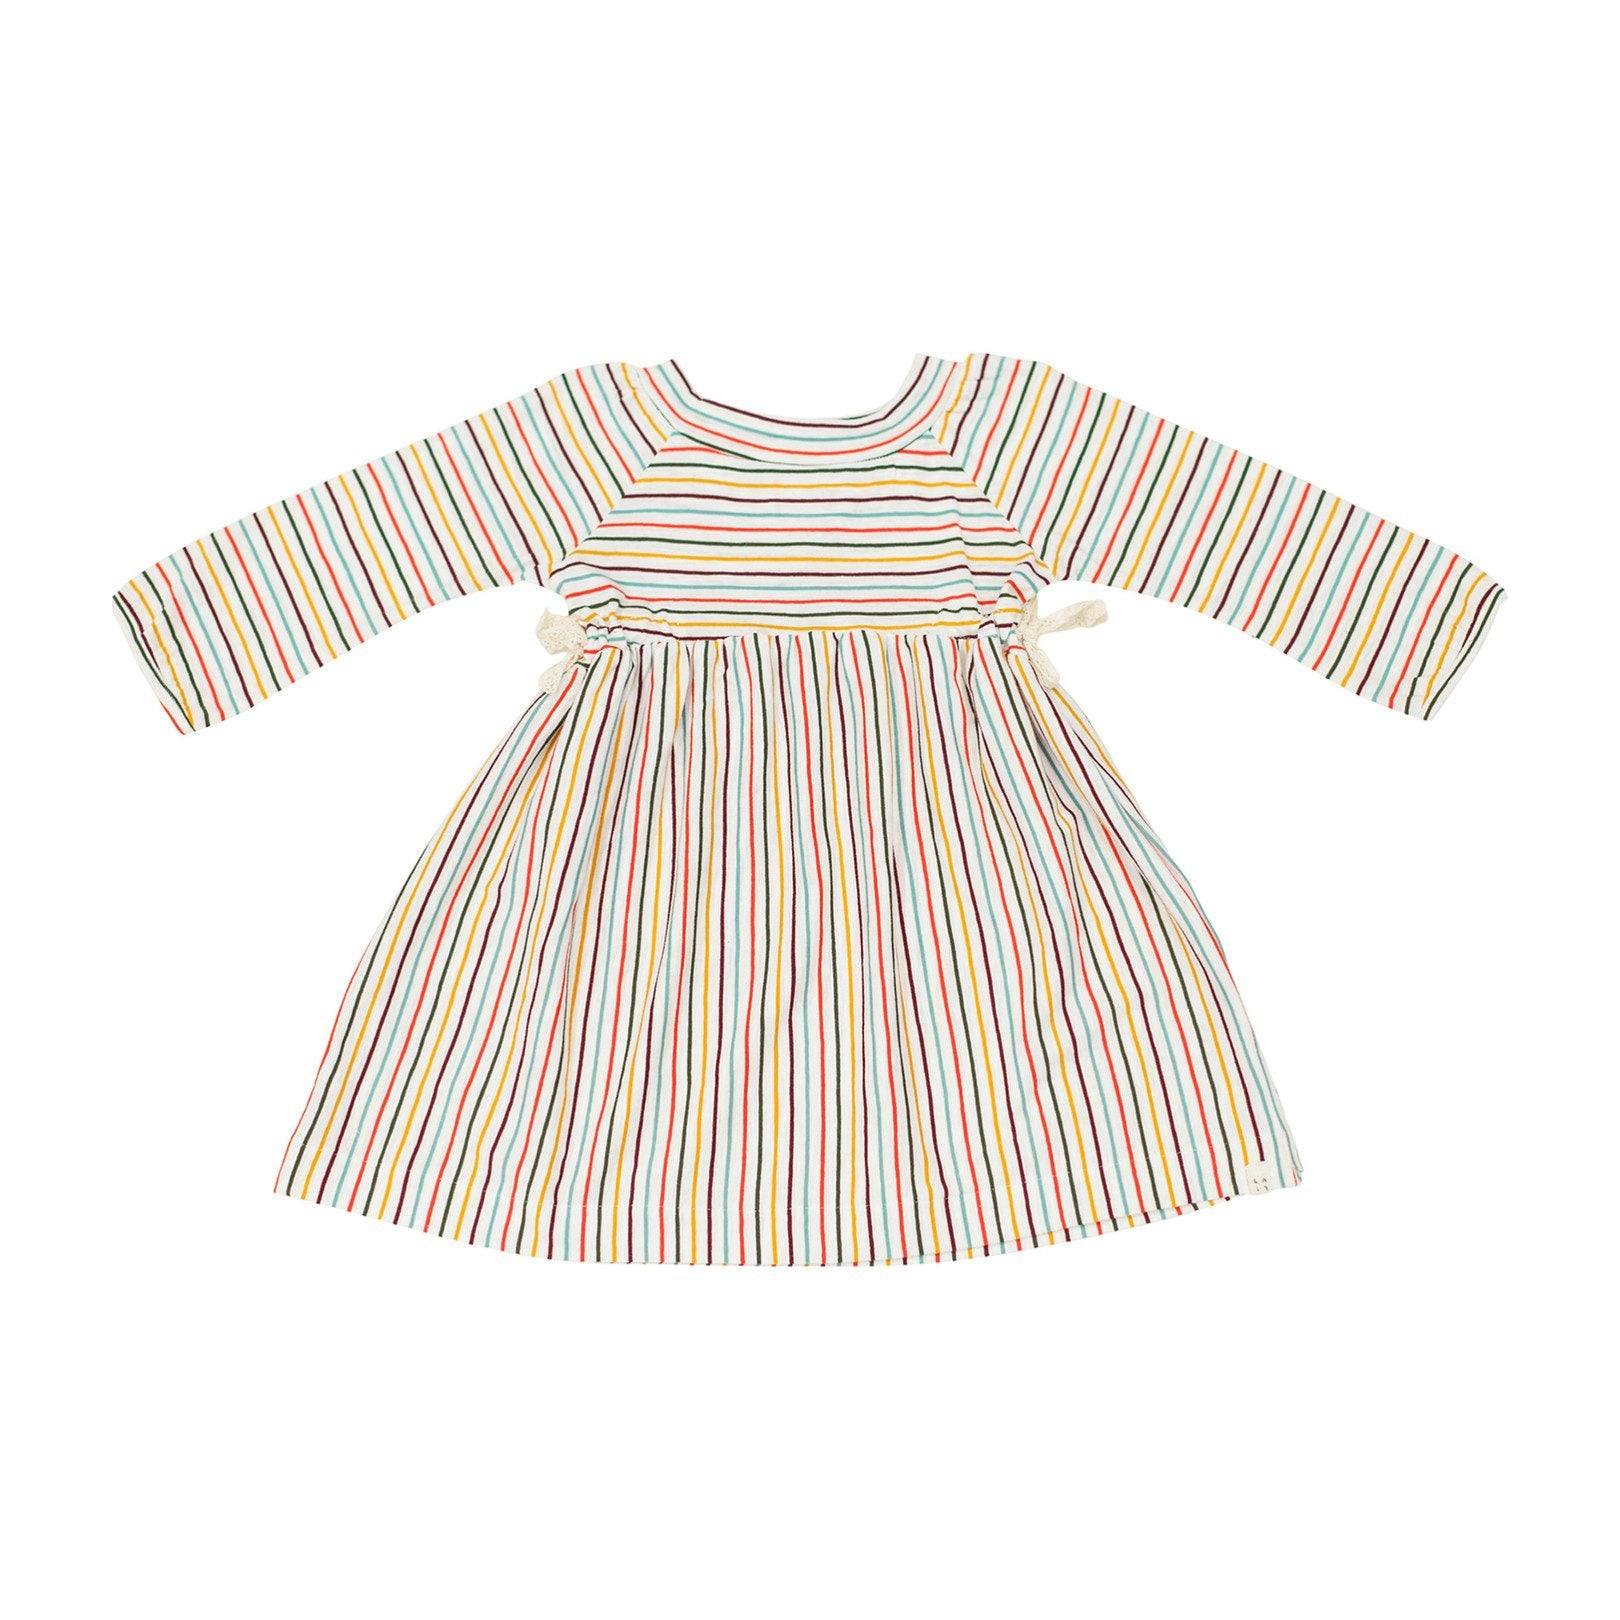 STRIPED SIDE- TIE DRESS, MULTI | SPINEL BOUTIQUE - Spinel Boutique